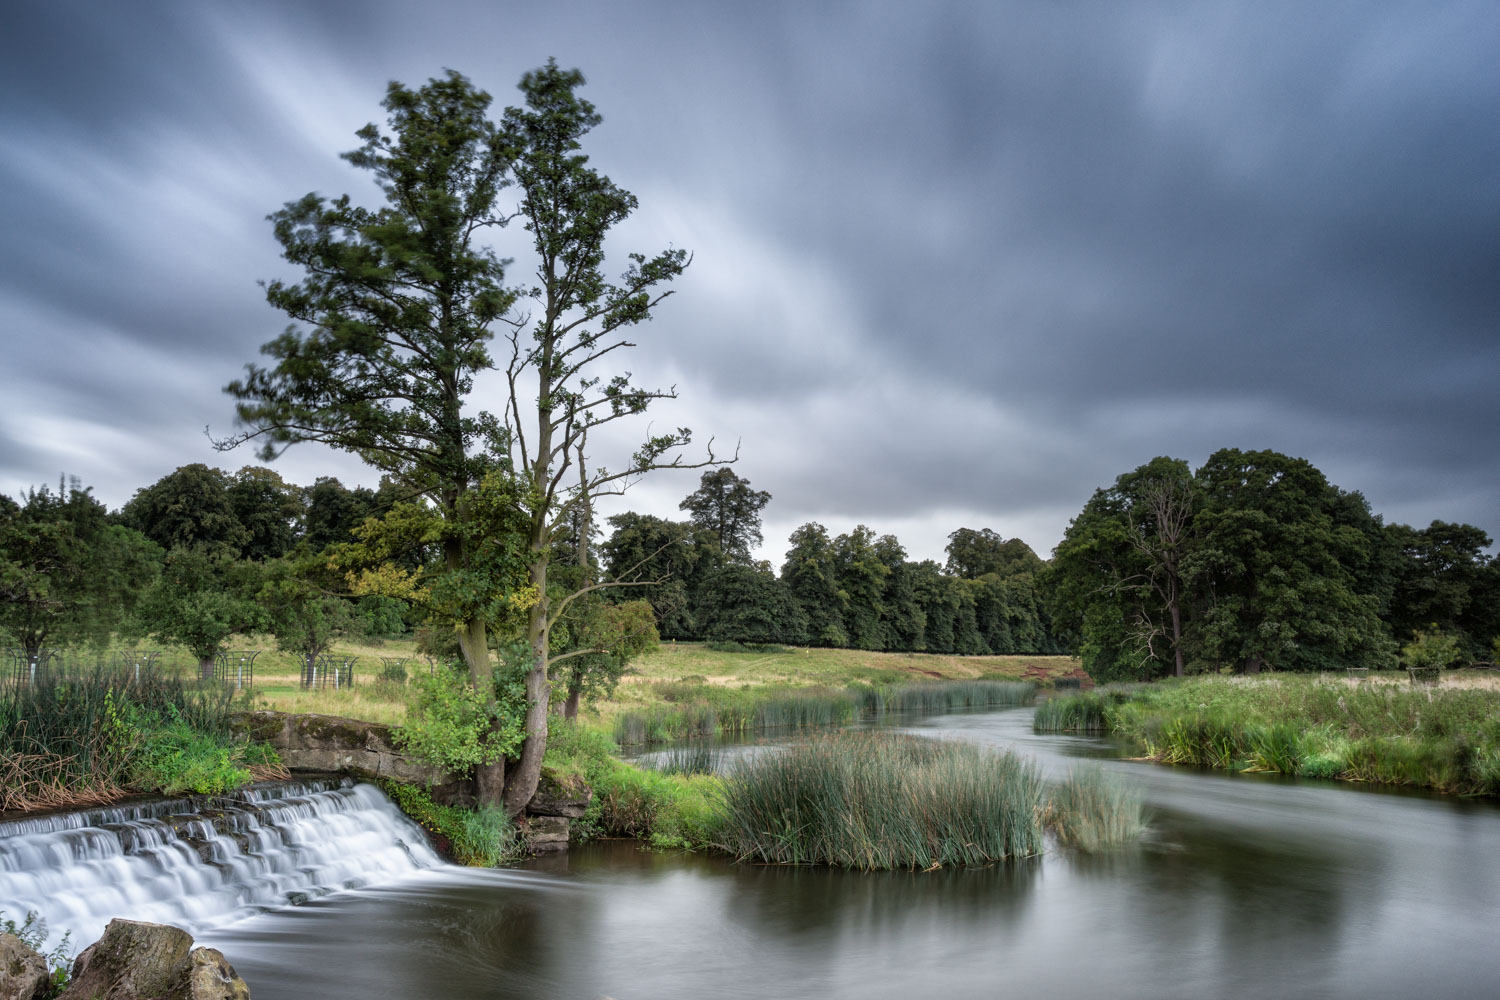 charlecote - using a 6 stop neutral density filter